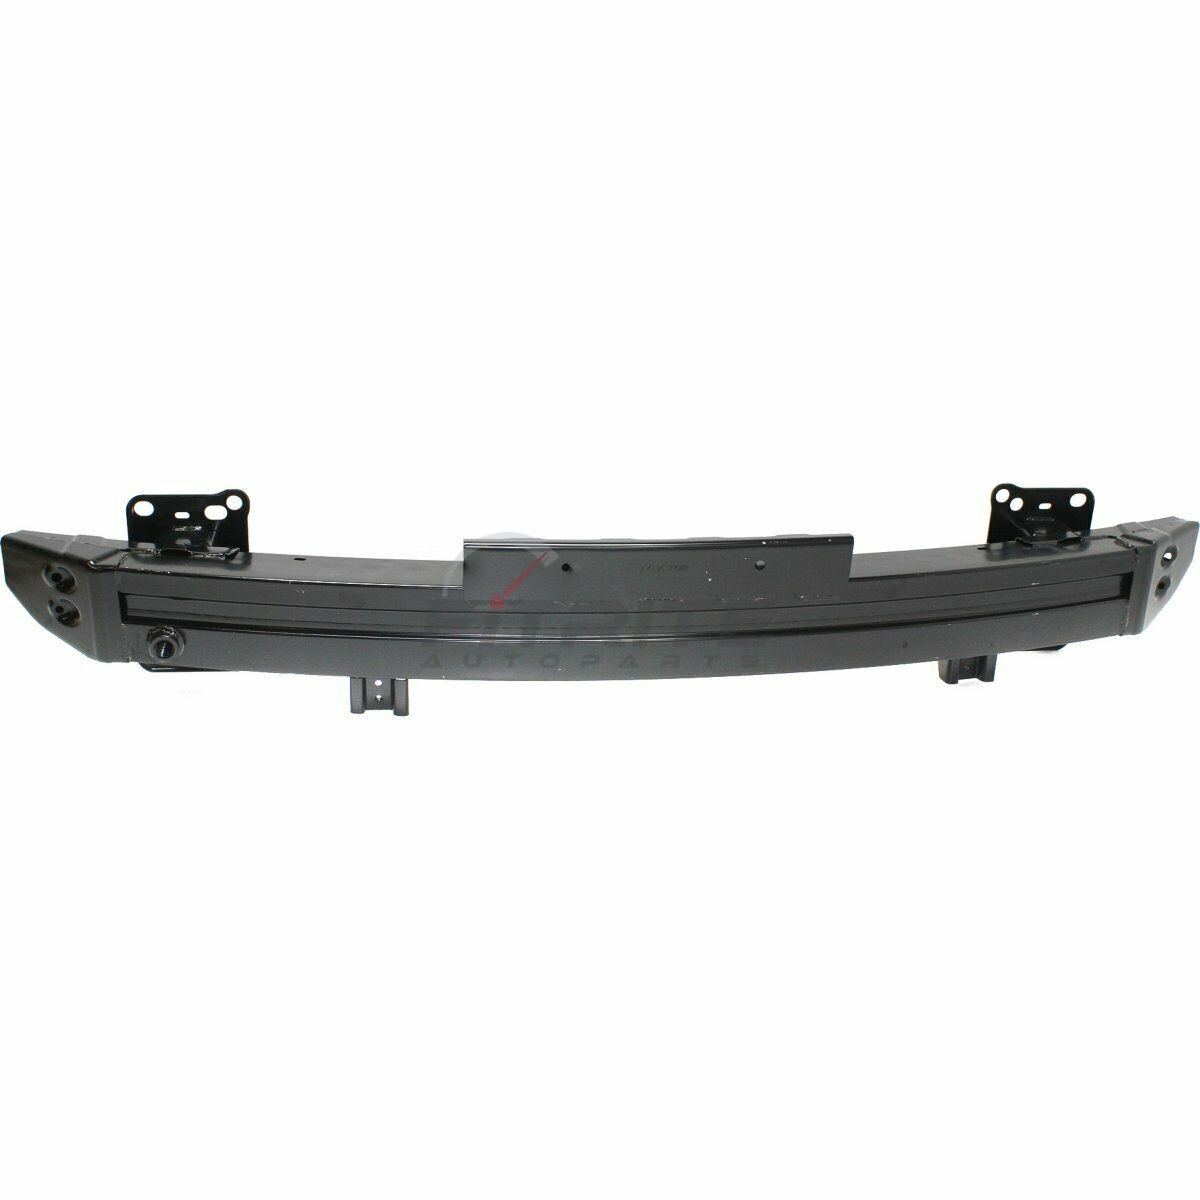 NEW FRONT BUMPER COVER REINFORCEMENT BAR FOR 2014-2016 HYUNDAI ELANTRA HY1006139